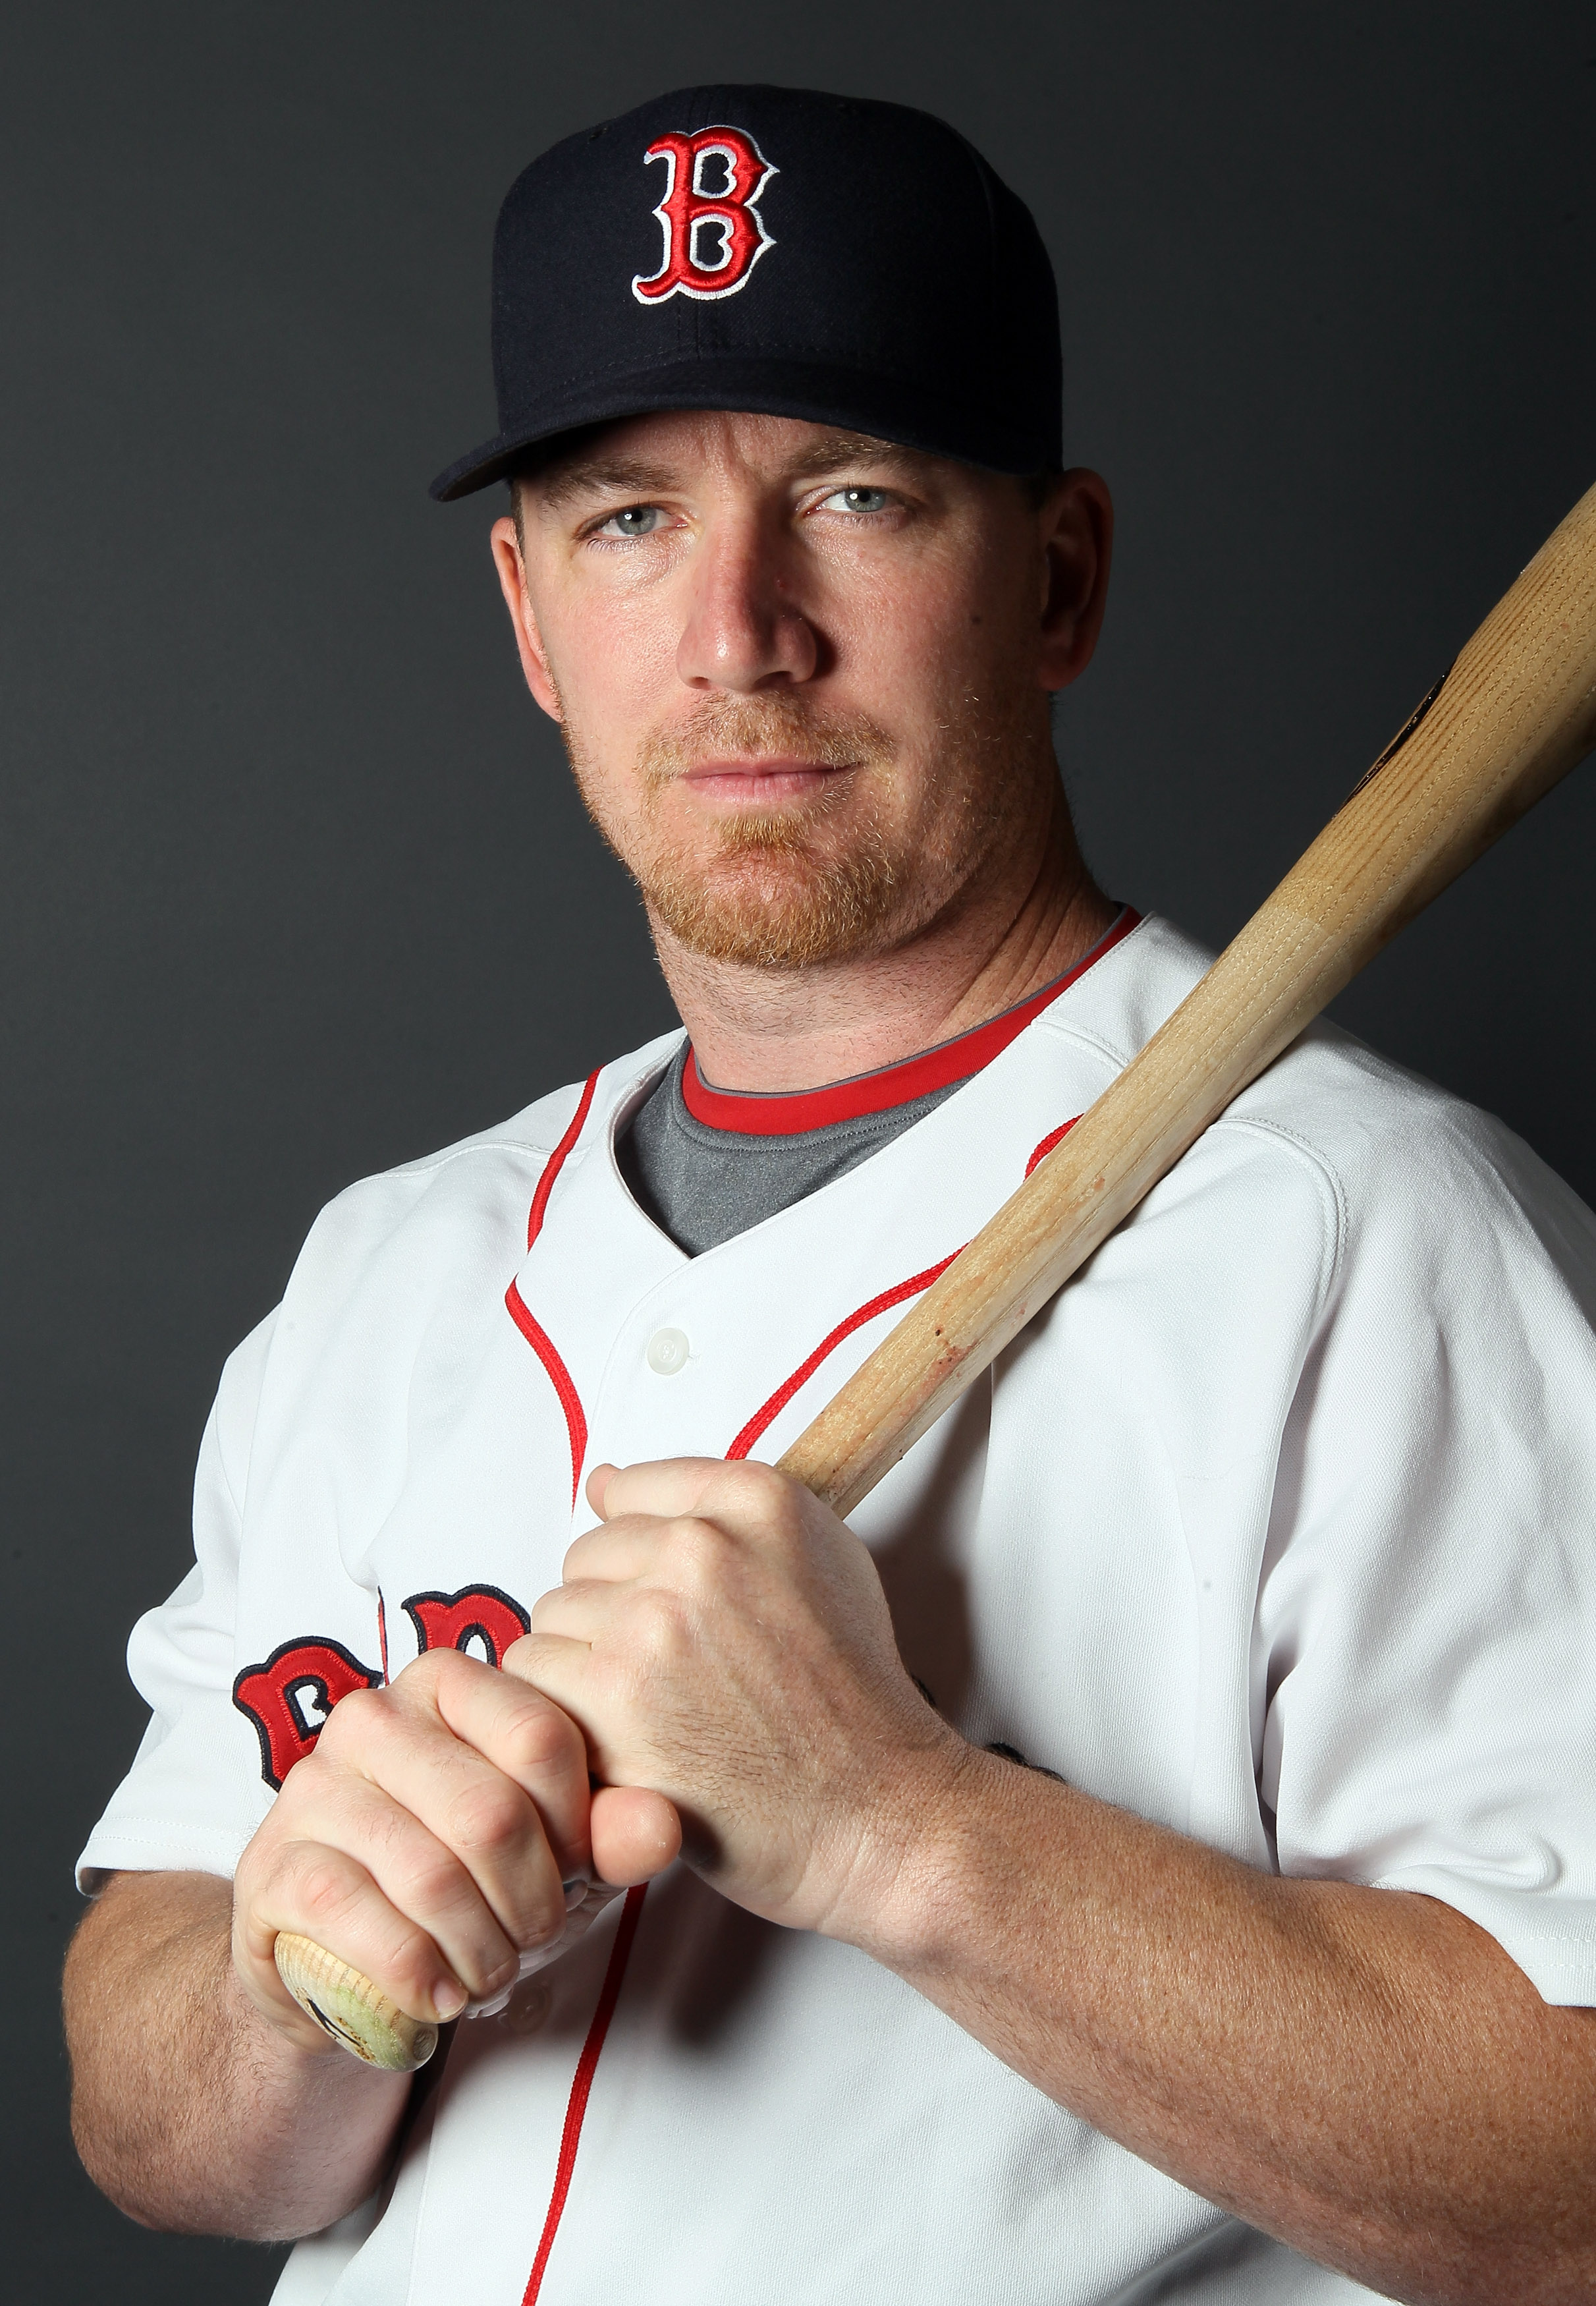 FT. MYERS, FL - FEBRUARY 20:  J.D. Drew #7 of the Boston Red Sox poses for a portrait during the Boston Red Sox Photo Day on February 20, 2011 at the Boston Red Sox Player Development Complex in Ft. Myers, Florida  (Photo by Elsa/Getty Images)